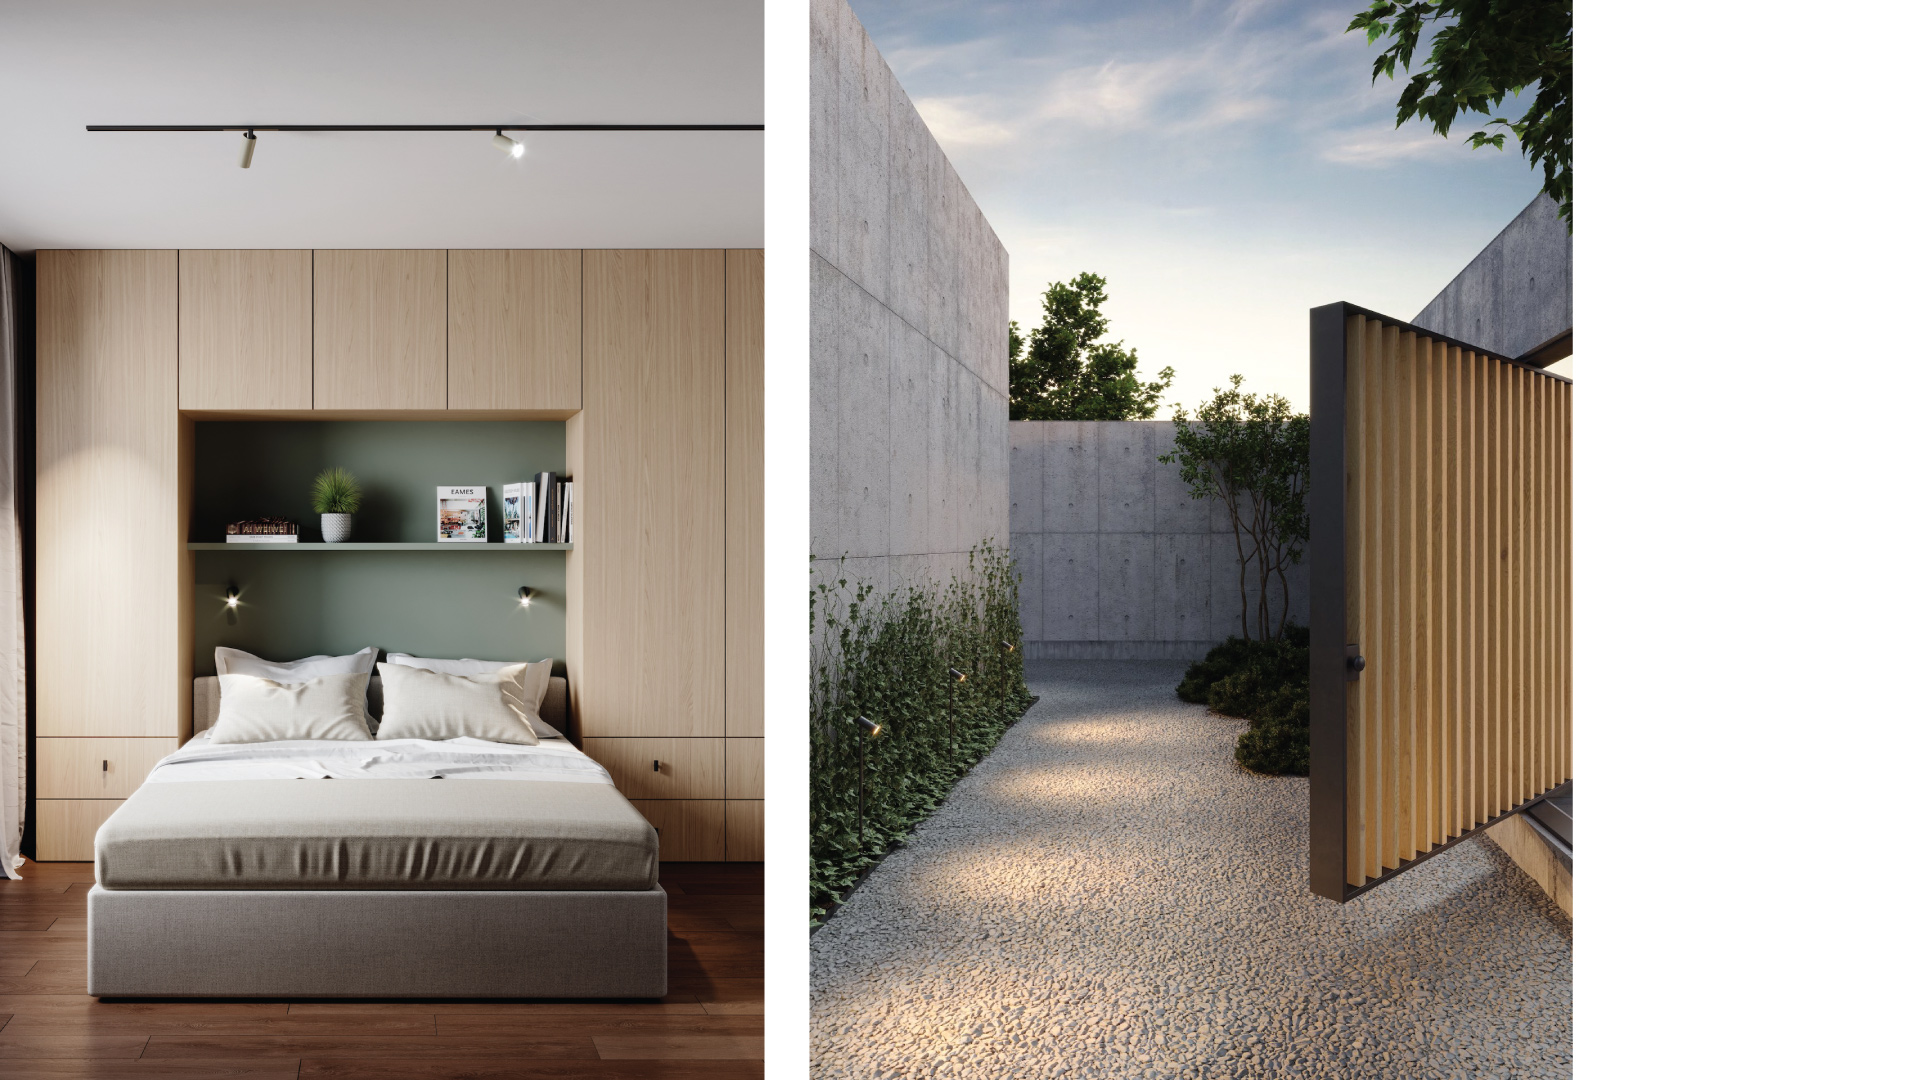 Interior and exterior 3D visualization agency